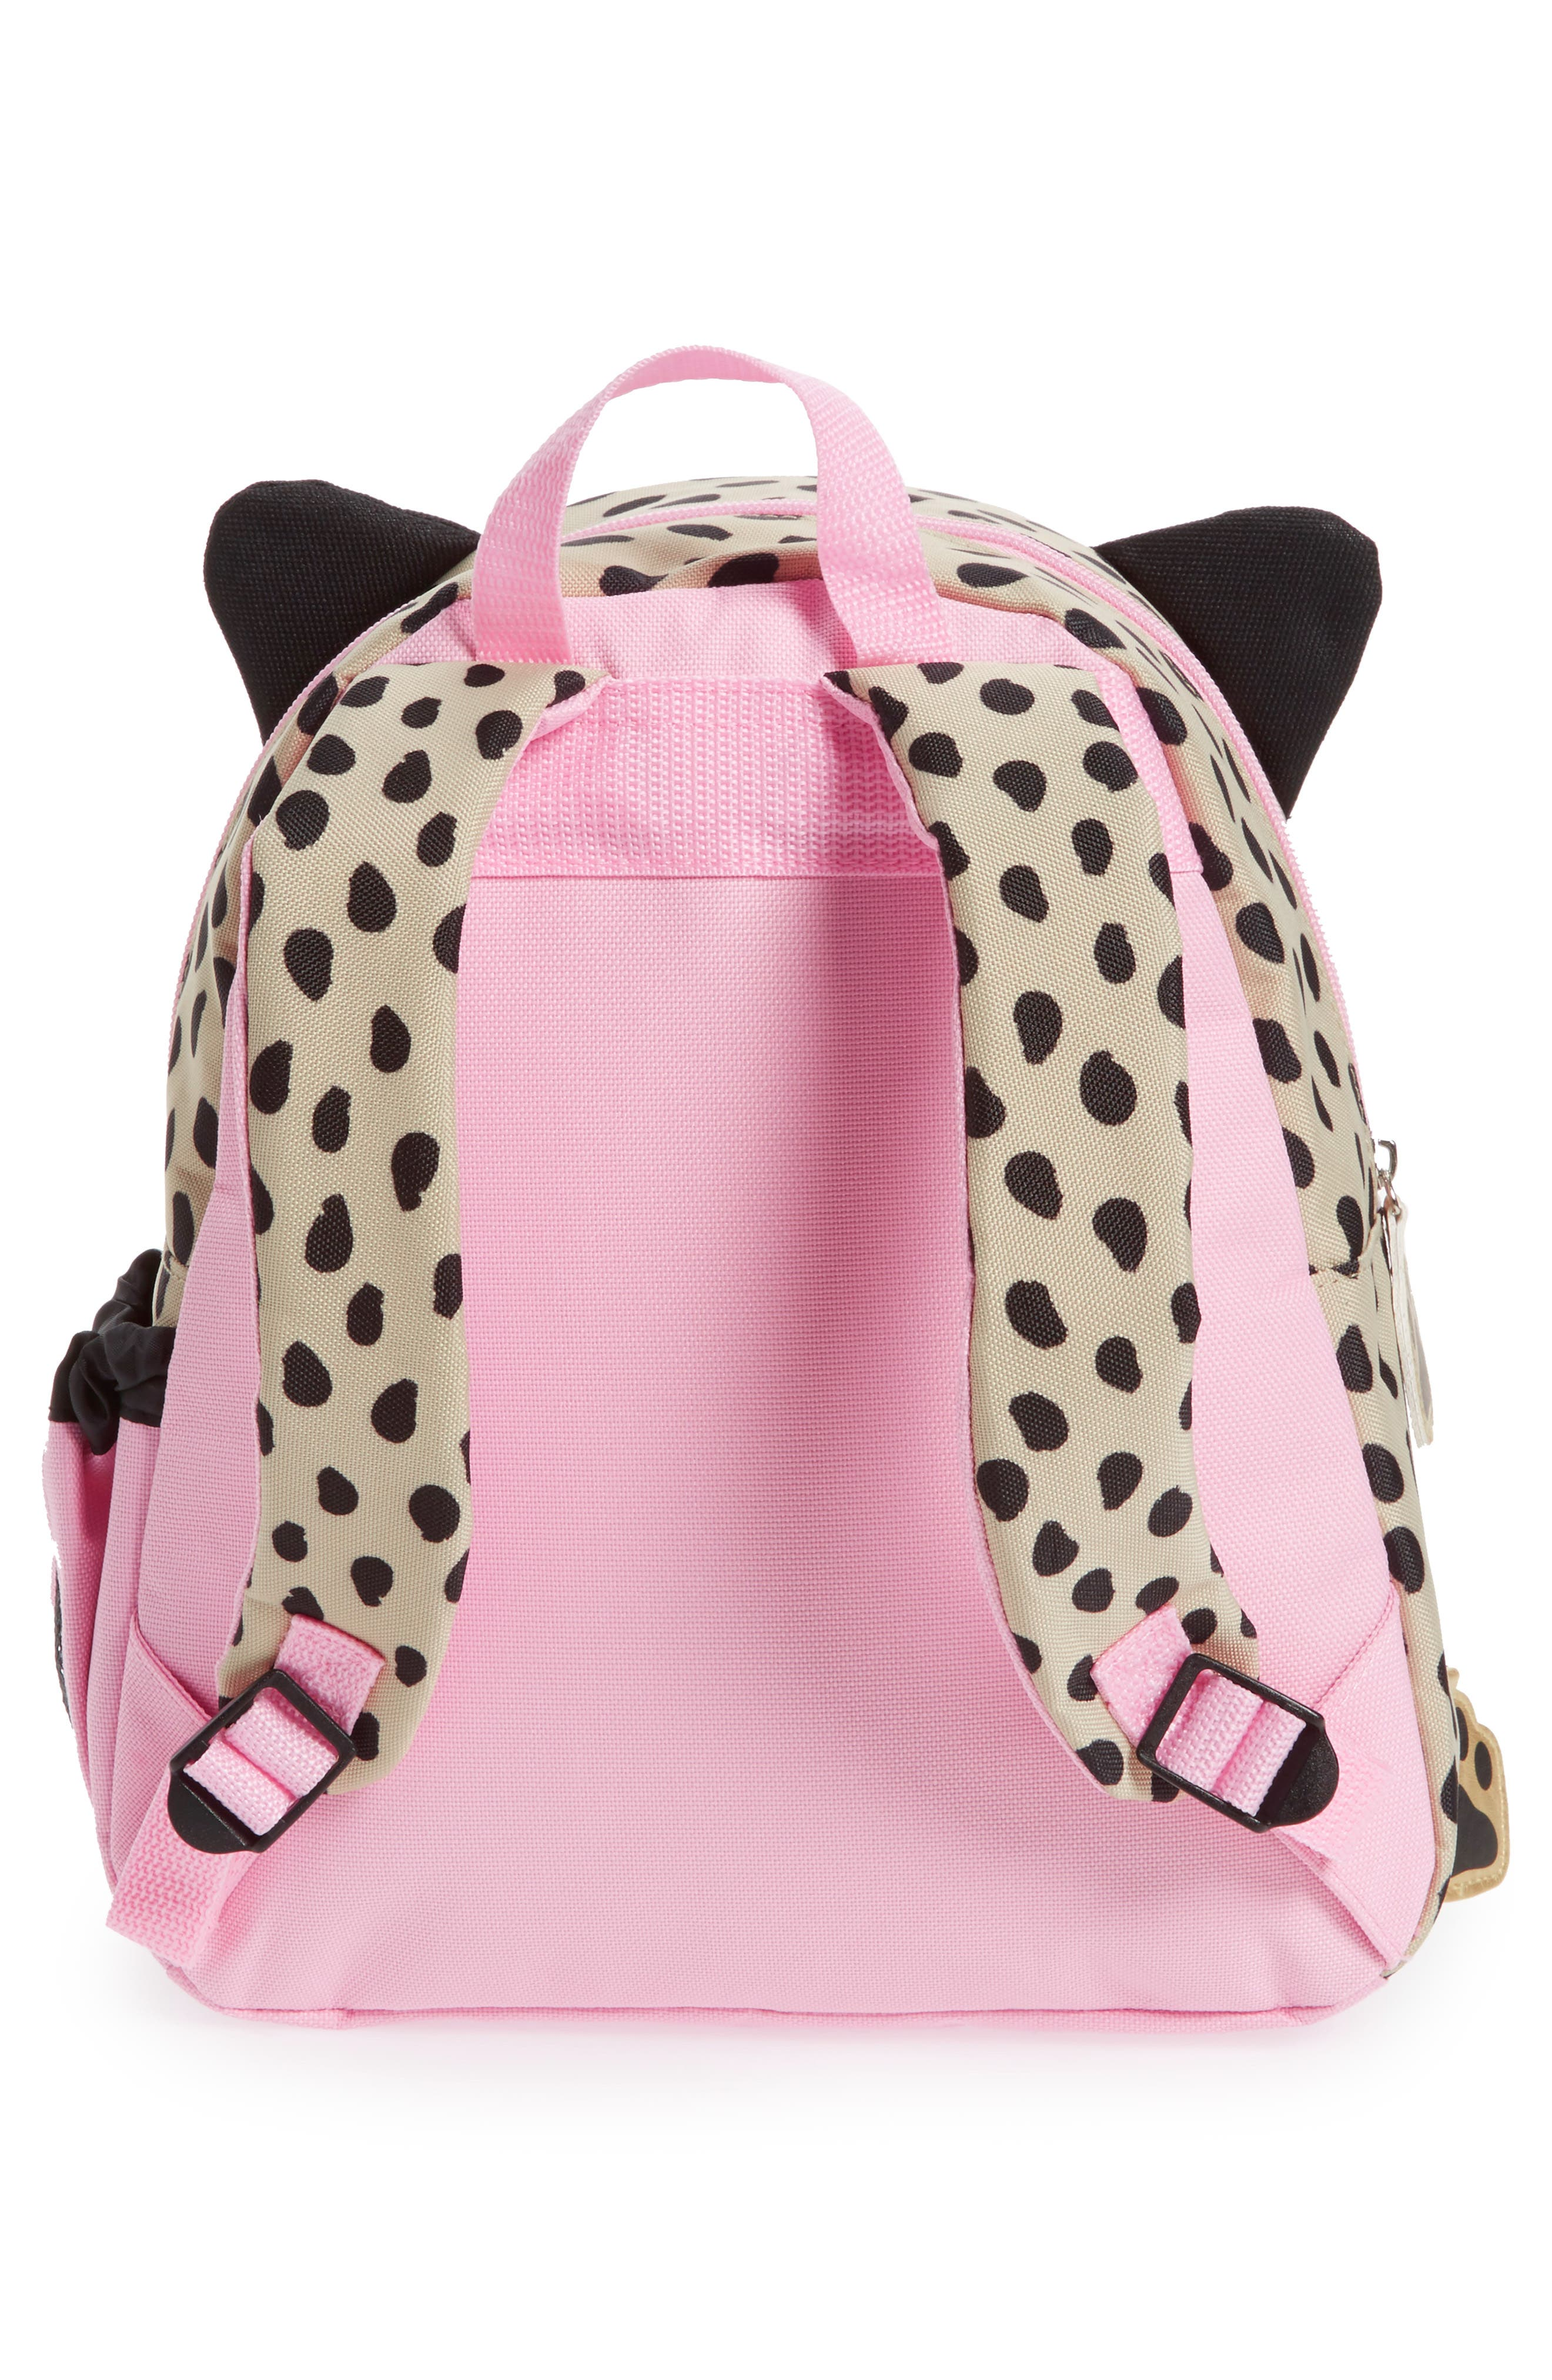 Zoo Pack Backpack,                             Alternate thumbnail 36, color,